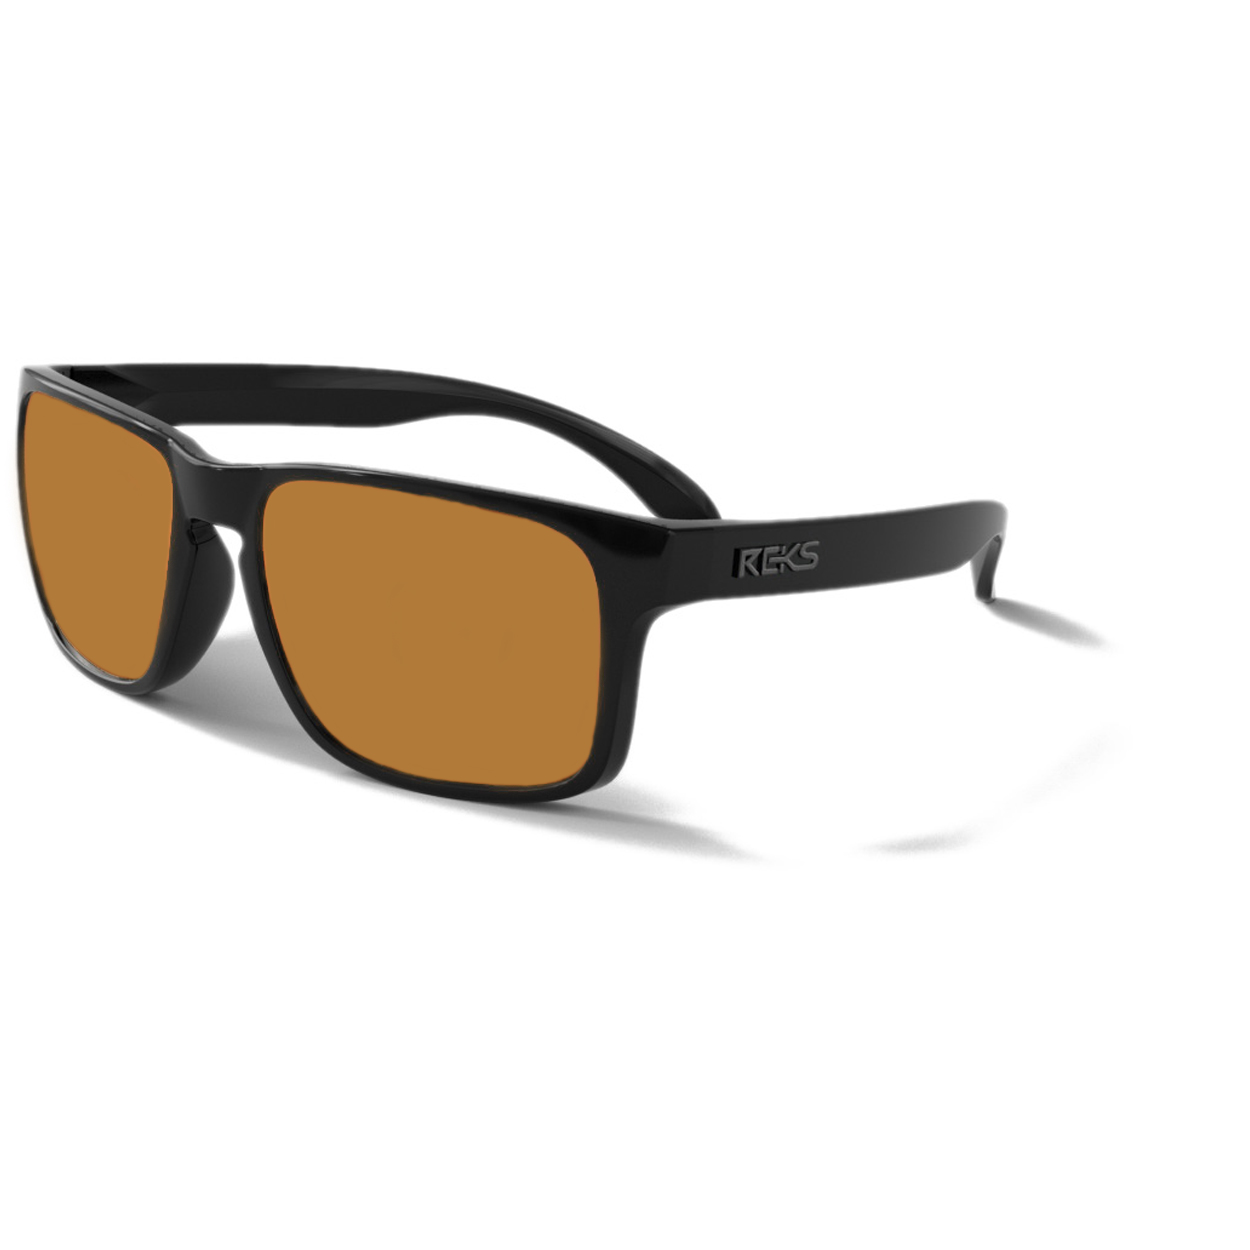 Reks Optics Sport Sunglasses...